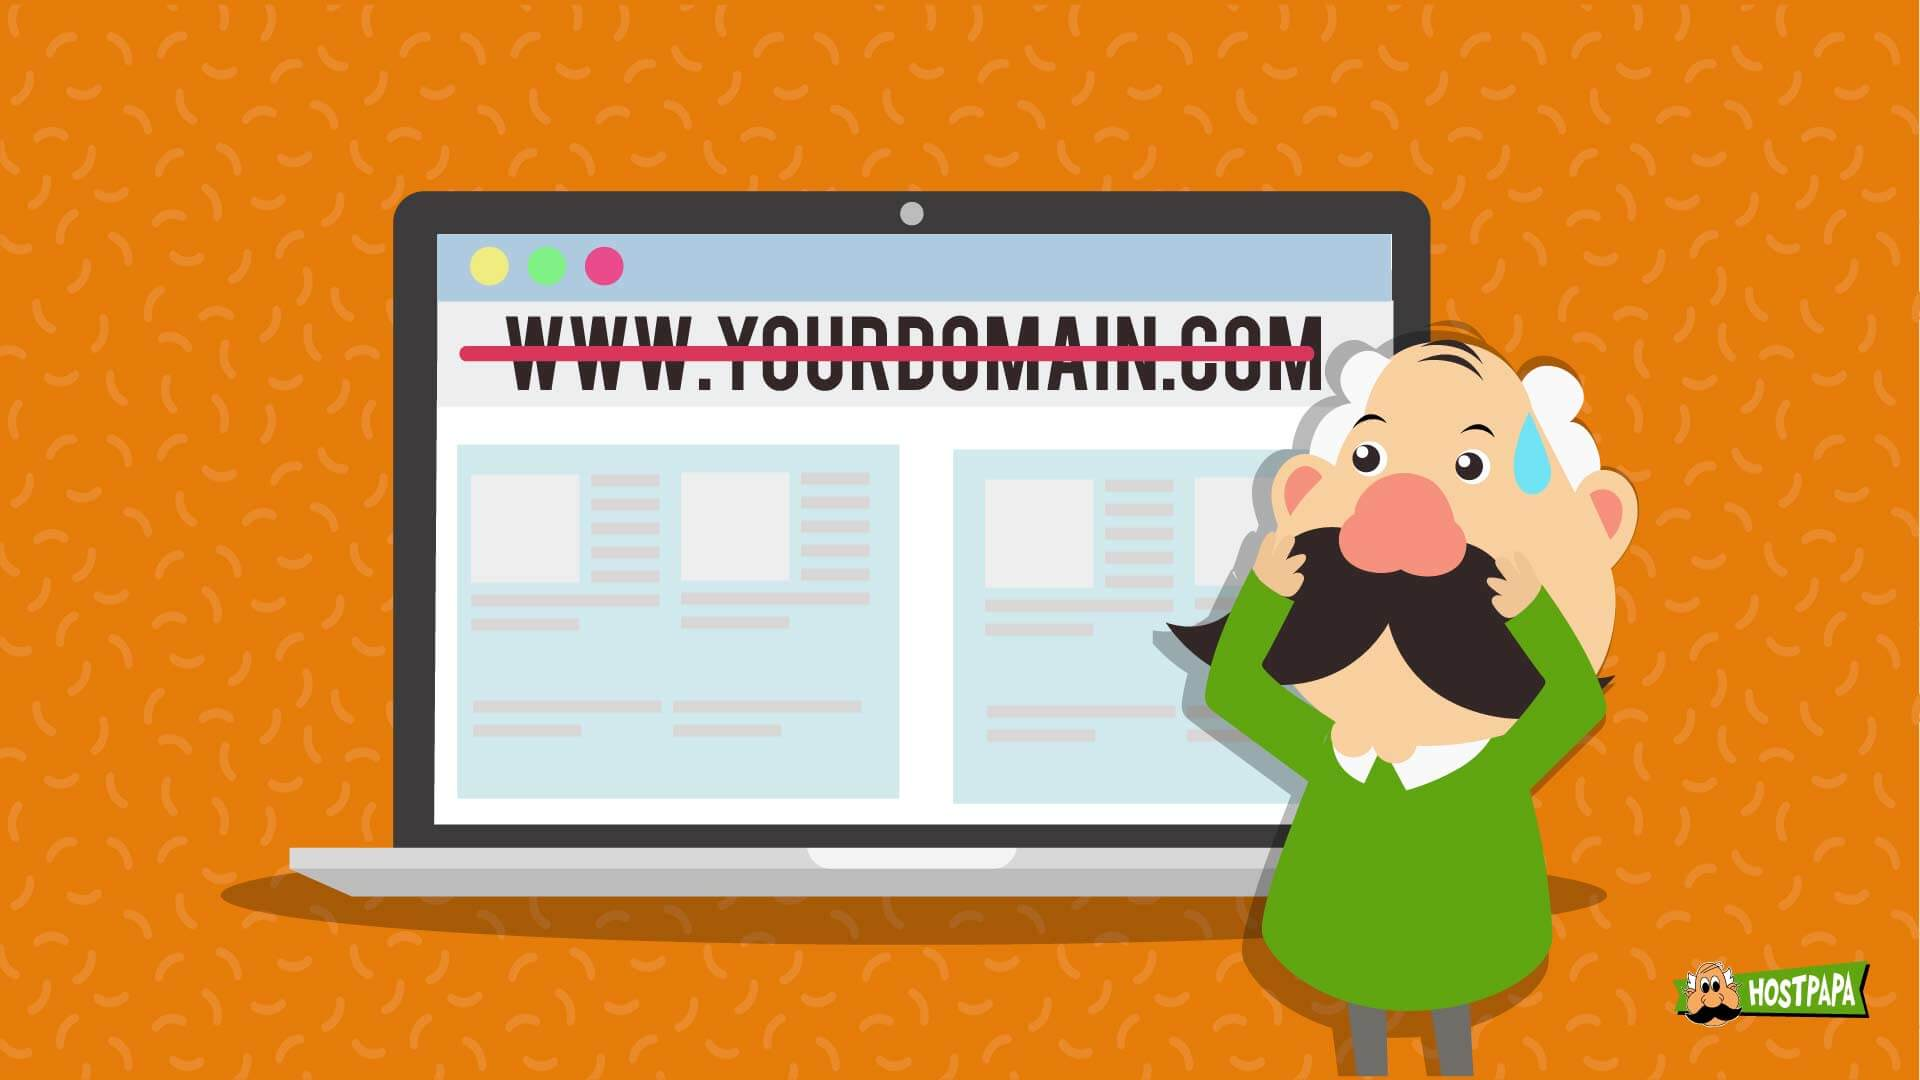 Check these tips to learn what to do if your domain name is taken